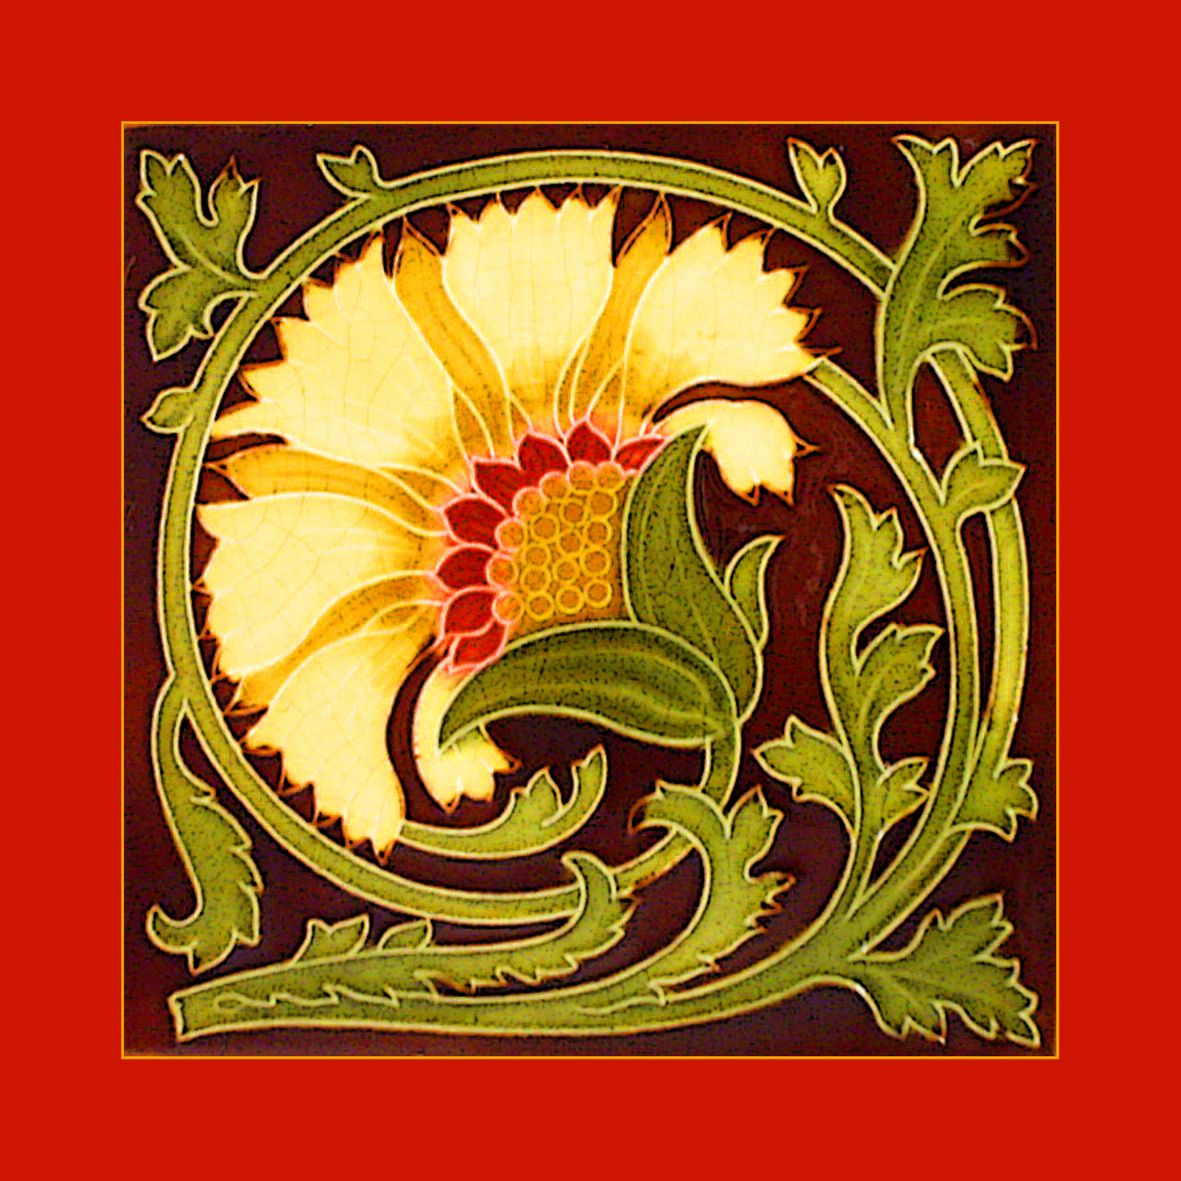 Art Deco Nouveau: 01 Art Nouveau Tile By Mintons China Works (1905-8